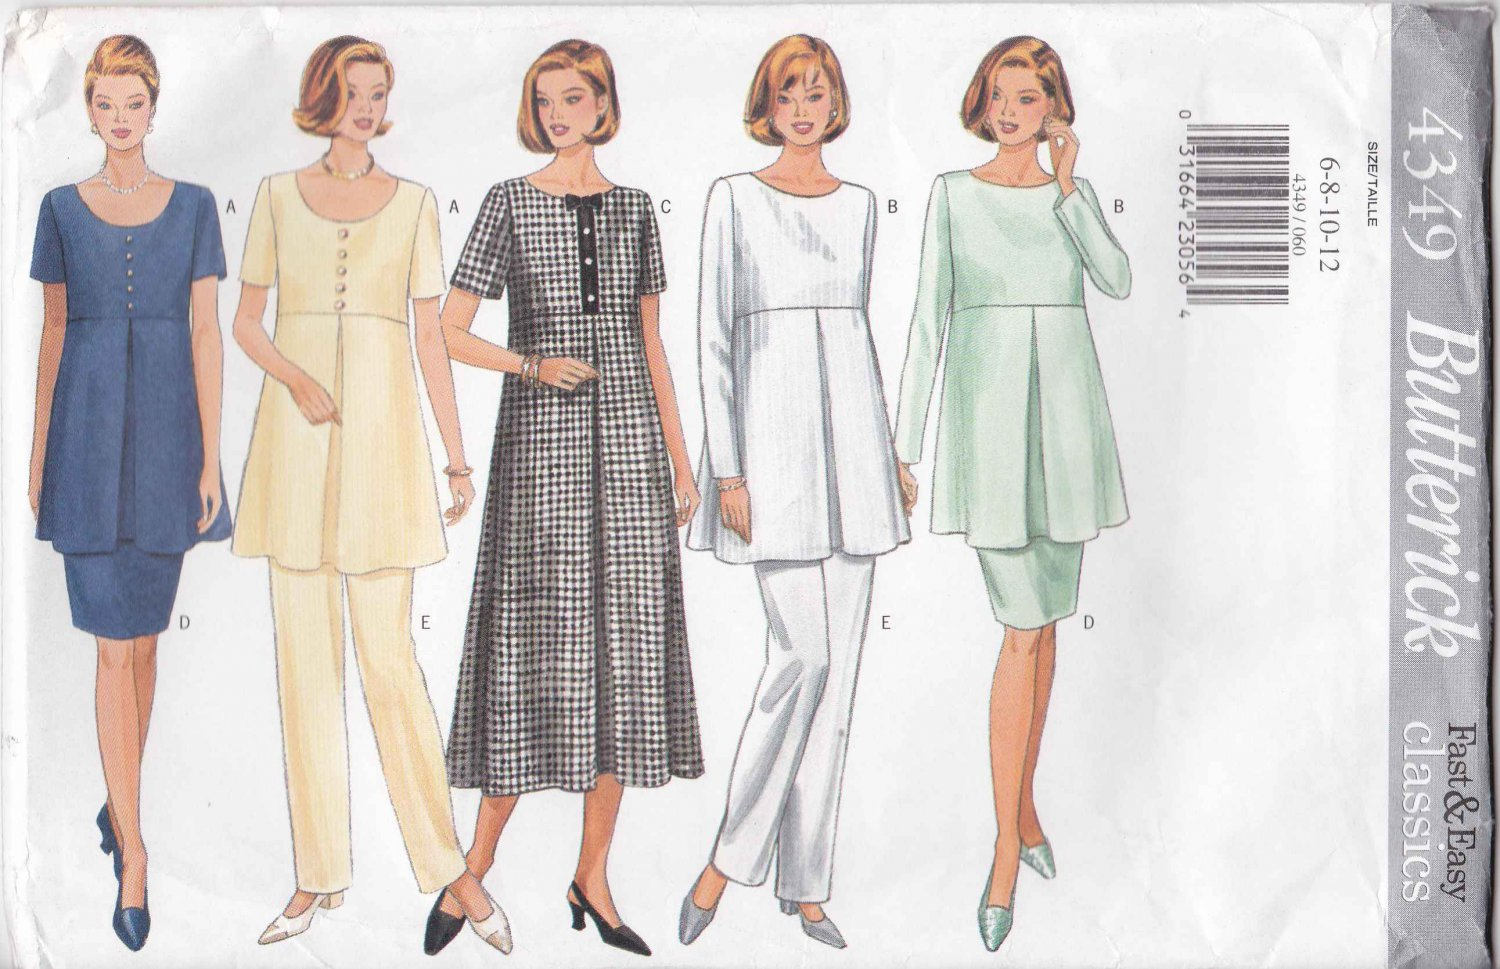 Butterick Sewing Pattern 4349 Misses Size 6-12 Easy Classic Maternity Wardrobe Dress Top Skirt Pants